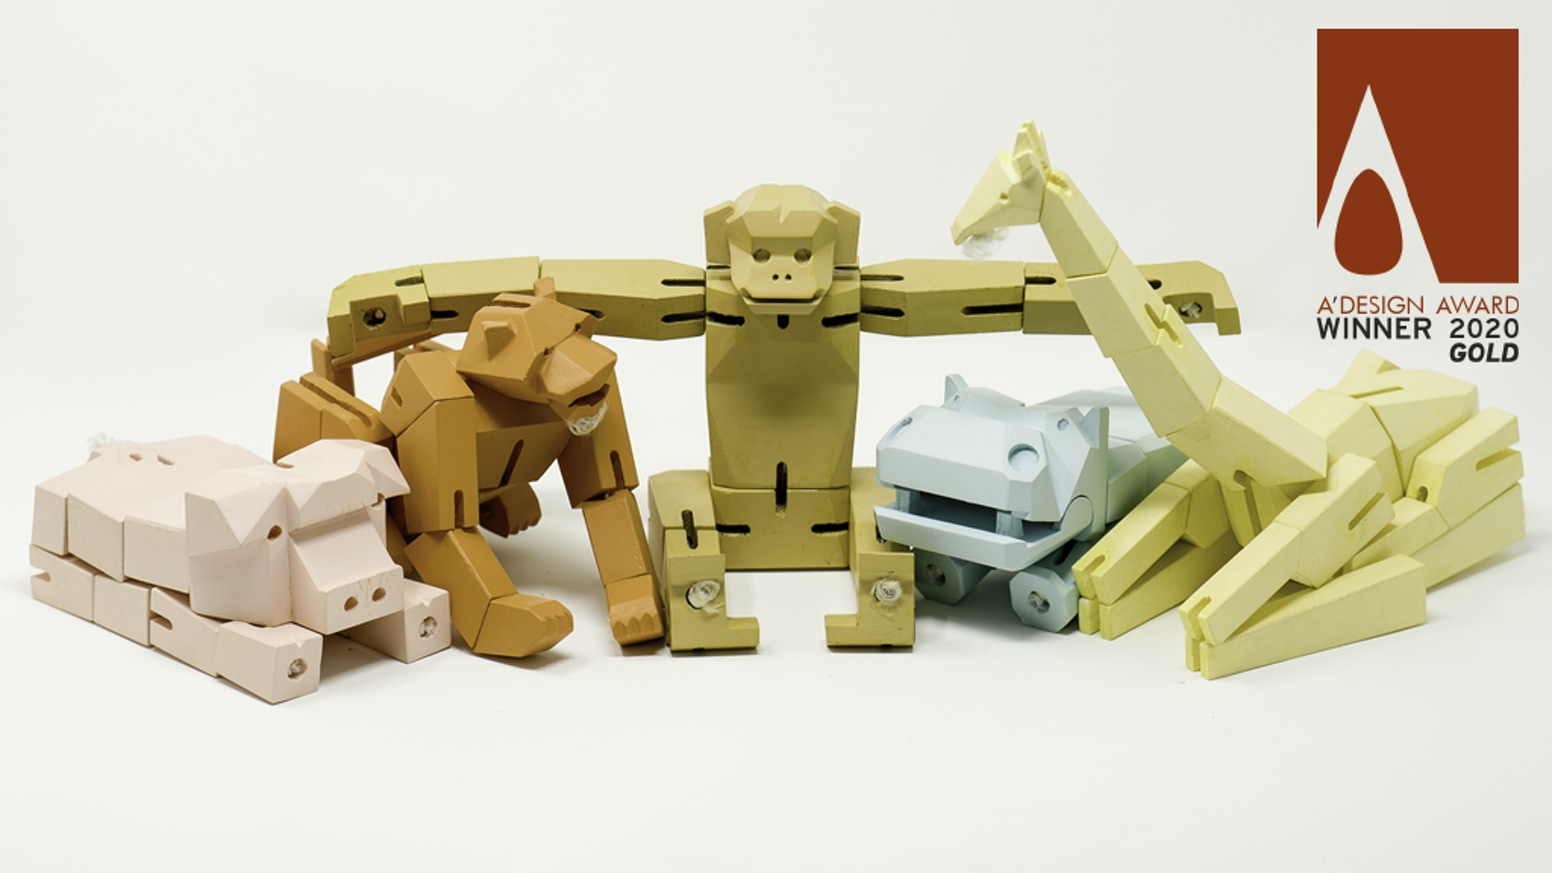 Geometric, transformable, animal figurines that fold into cuboids and fit snugly into their resting boxes.